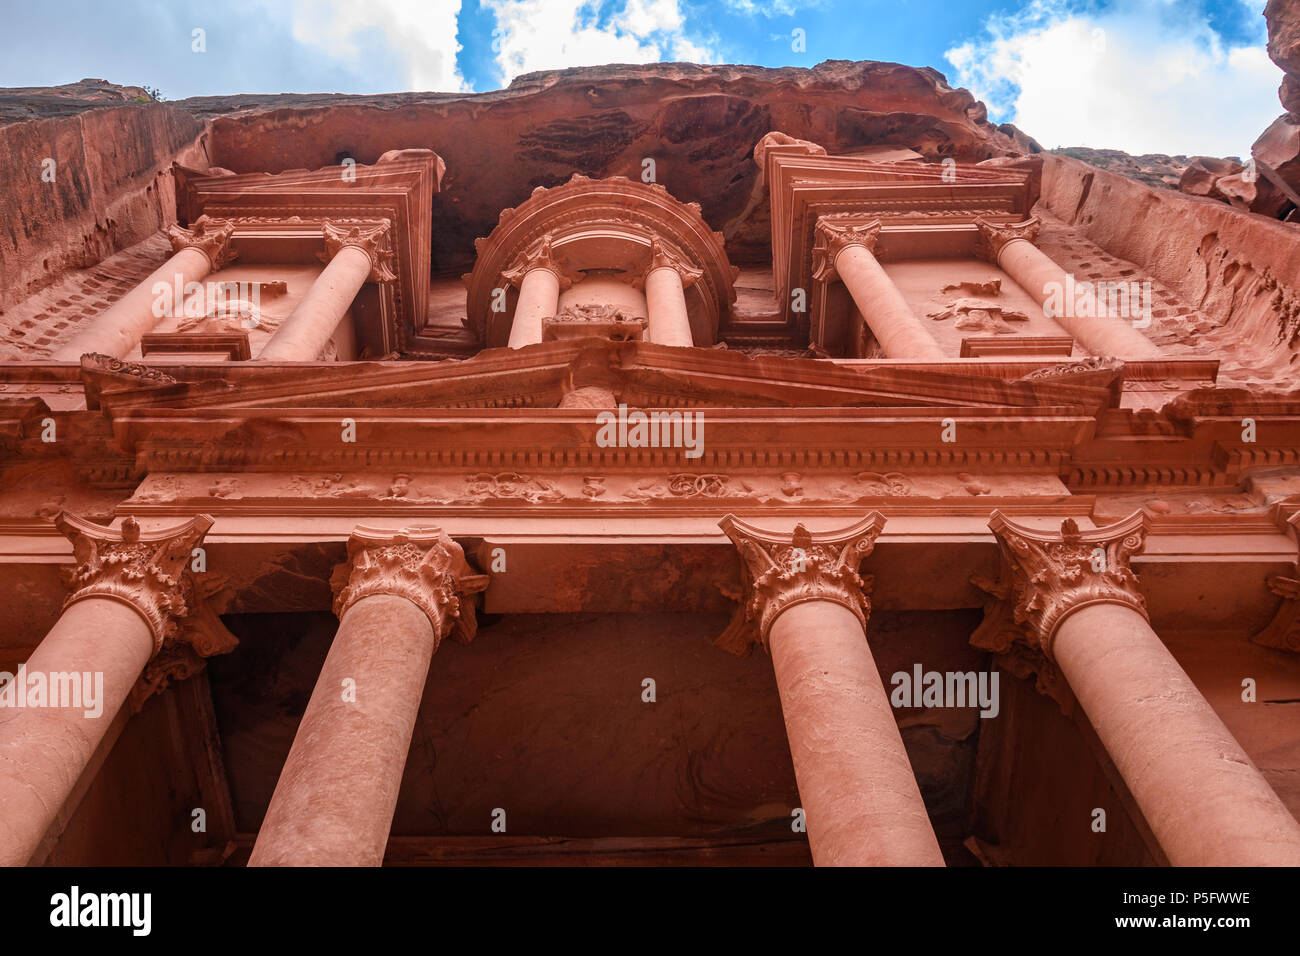 The Treasury from below in the ancient city of Petra, Jordan Stock Photo